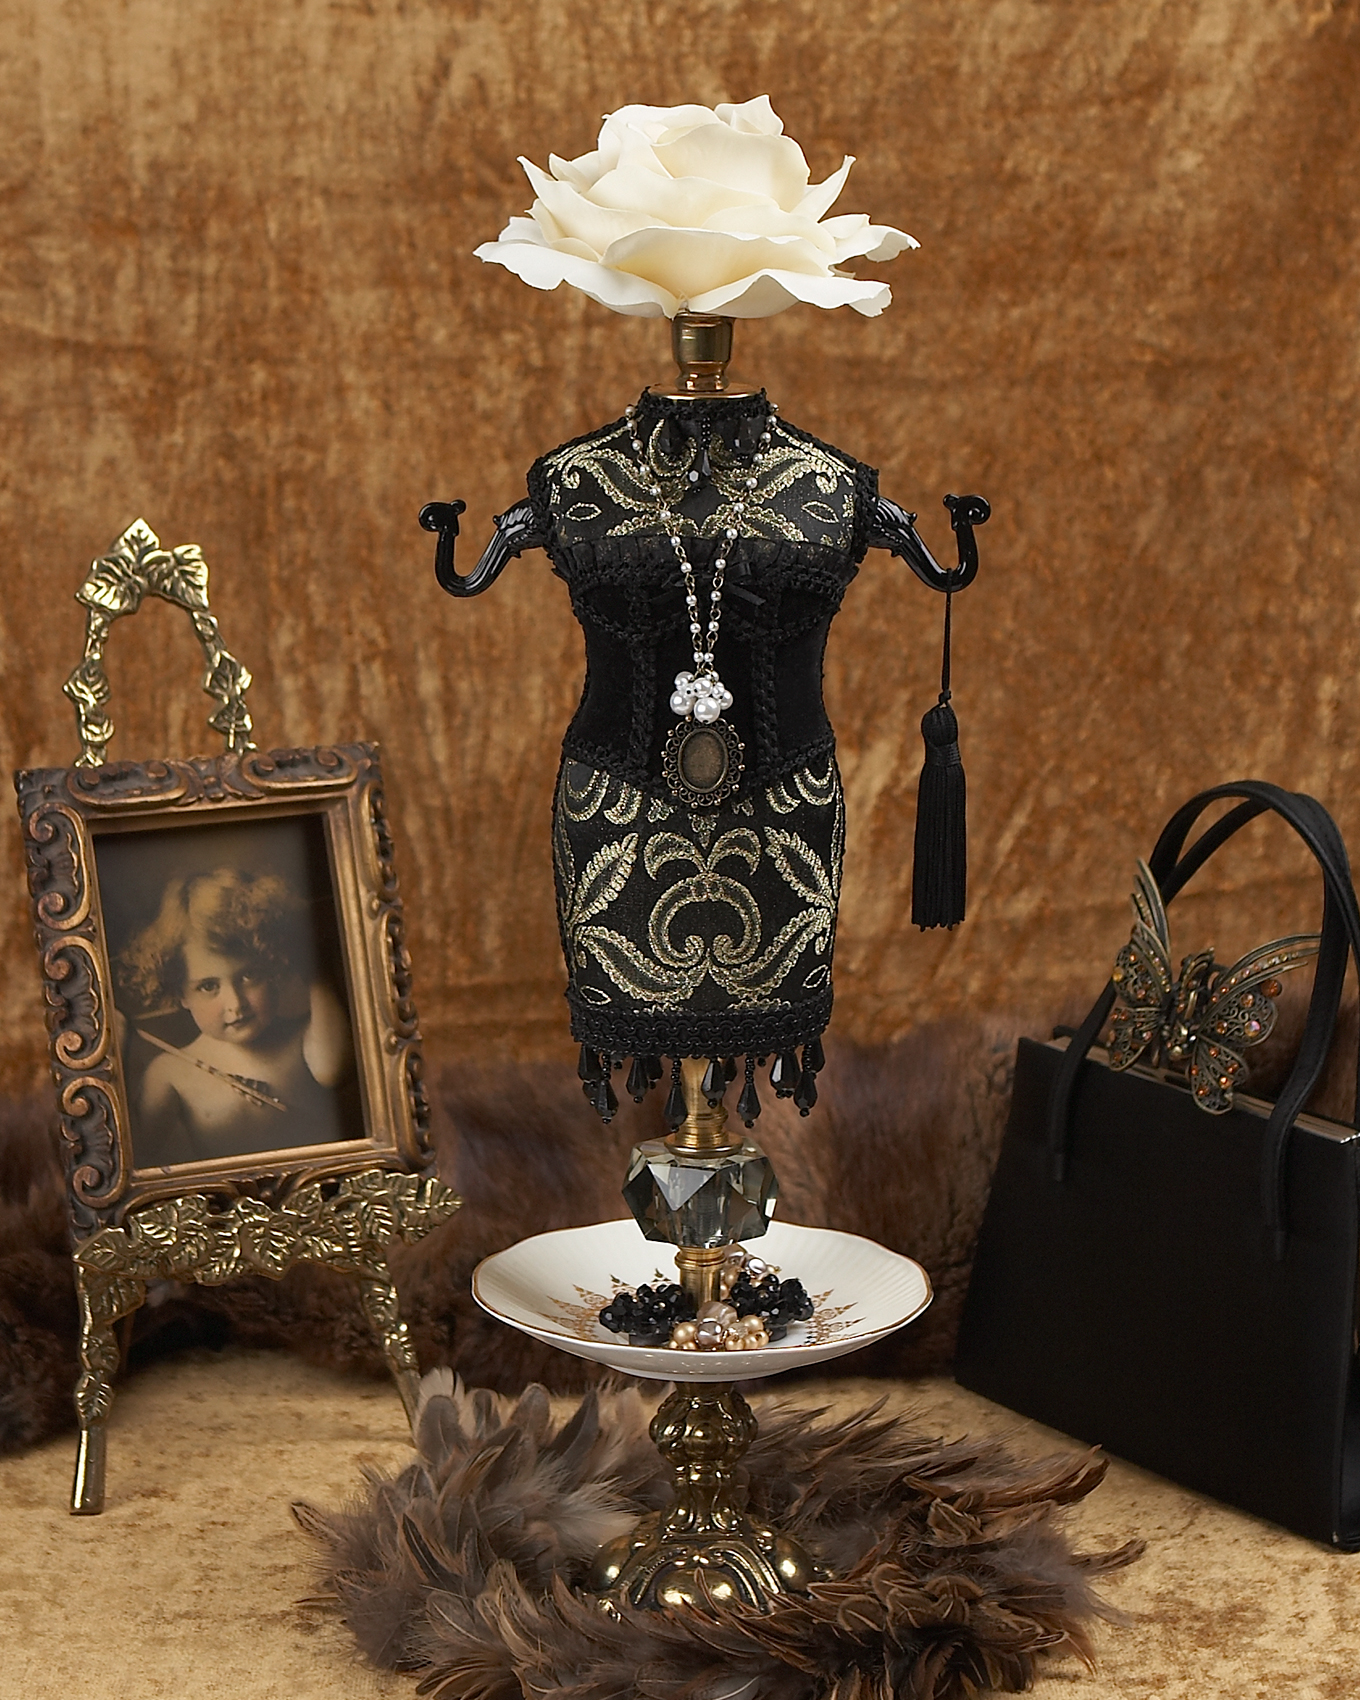 Jewelery holder figurine in black outfit